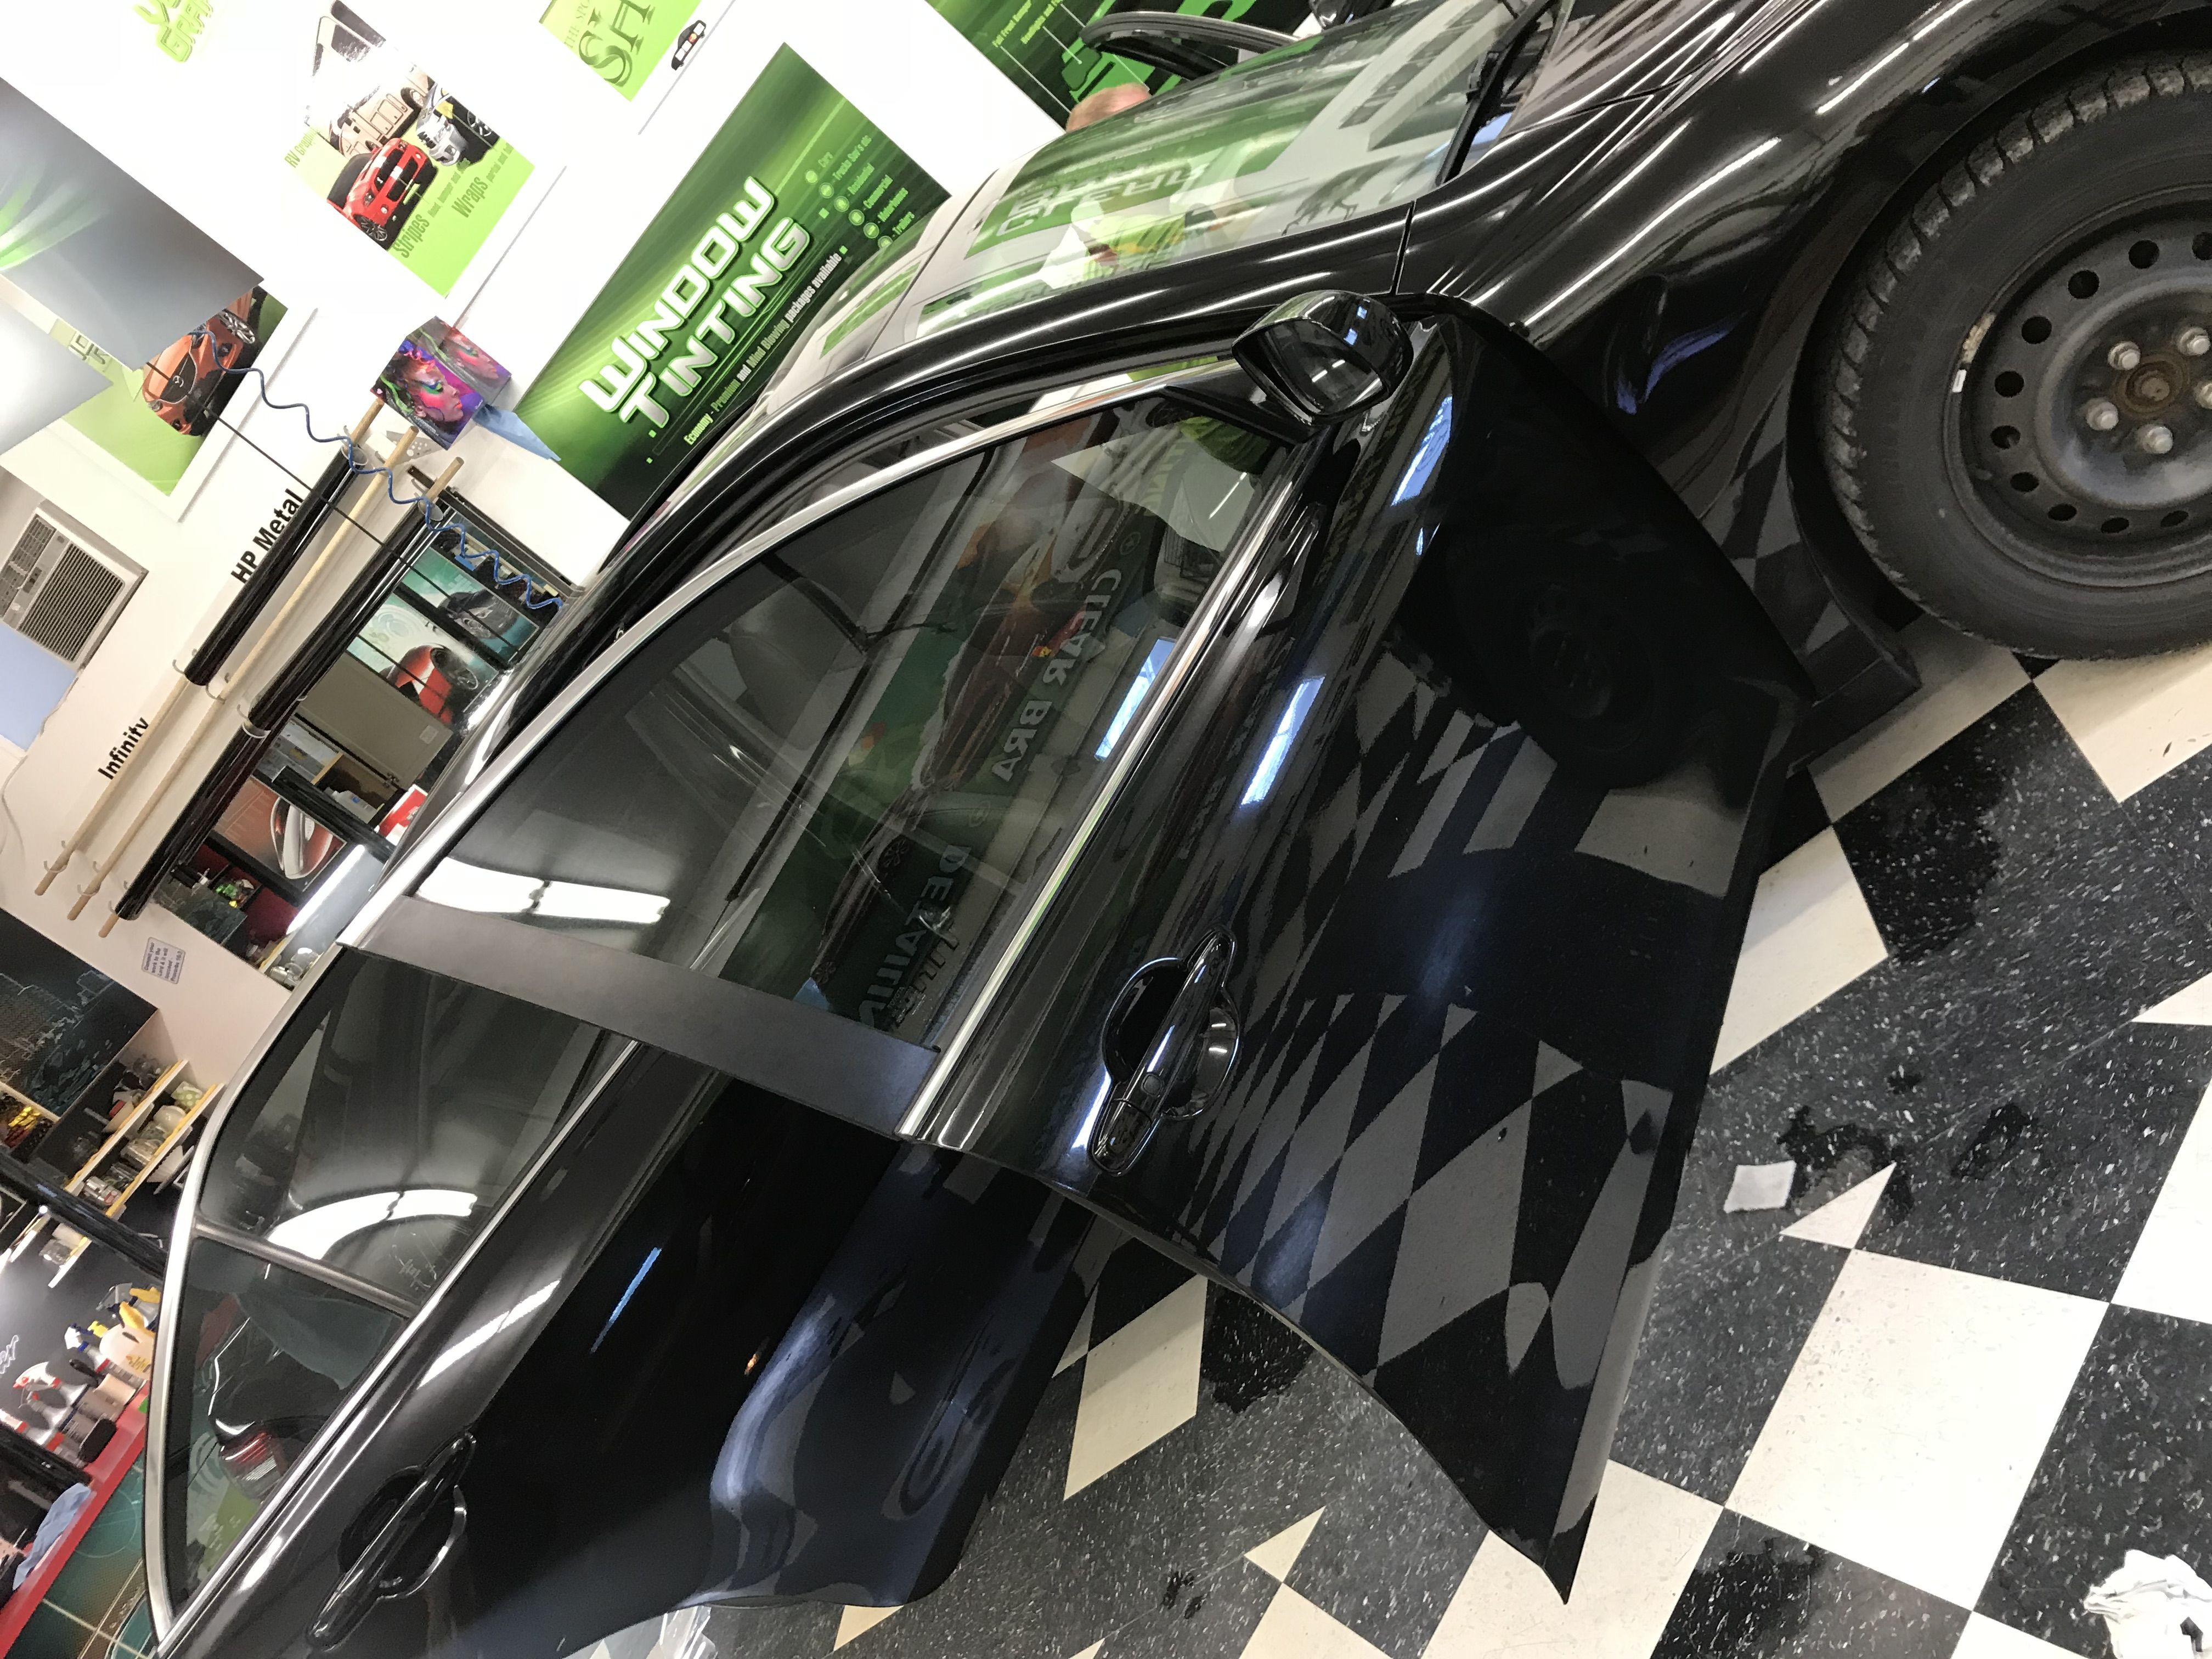 Nick did a fantastic job tinting this Camry here, clearly